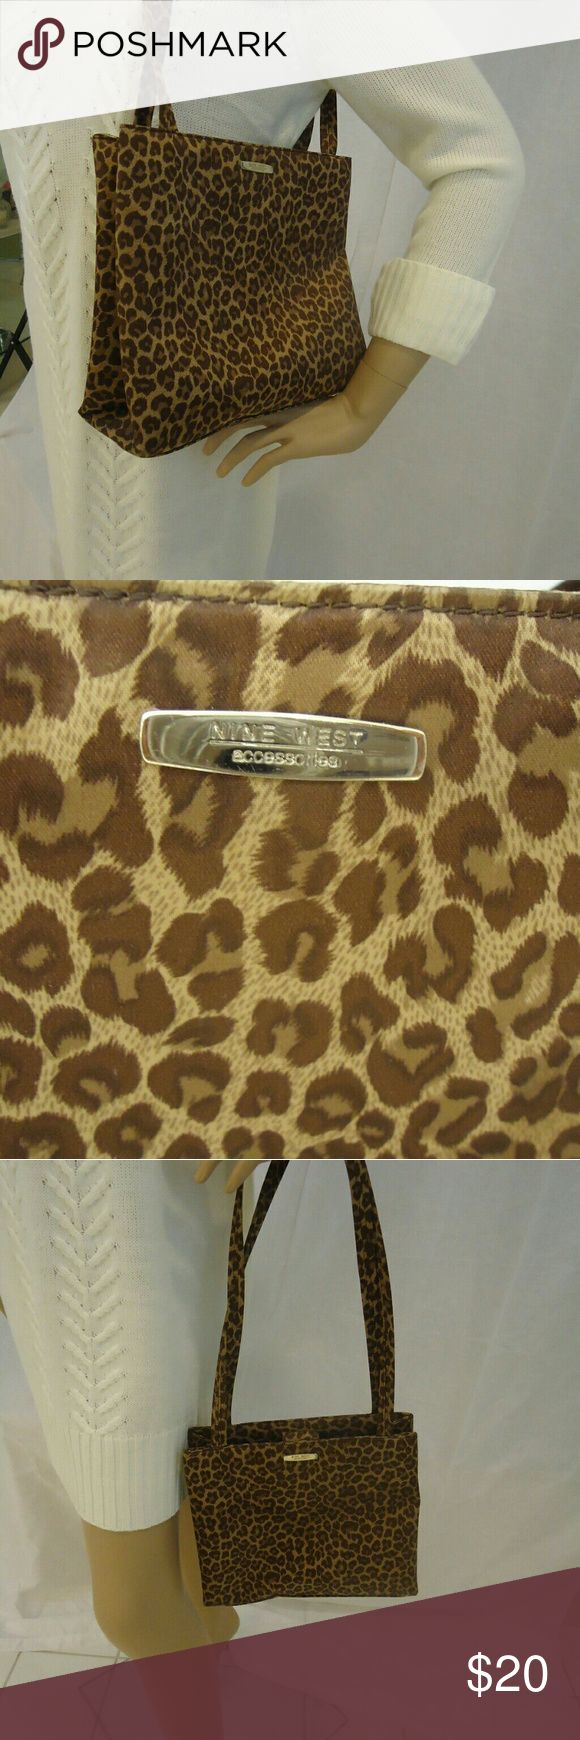 "Nine West Cheetah Purse Animal Print Shoulder Bag Nine West Cheetah Bag 9.25"" High  7"" Deep 10"" Long 14"" Strap Drop Nine West Bags Shoulder Bags"